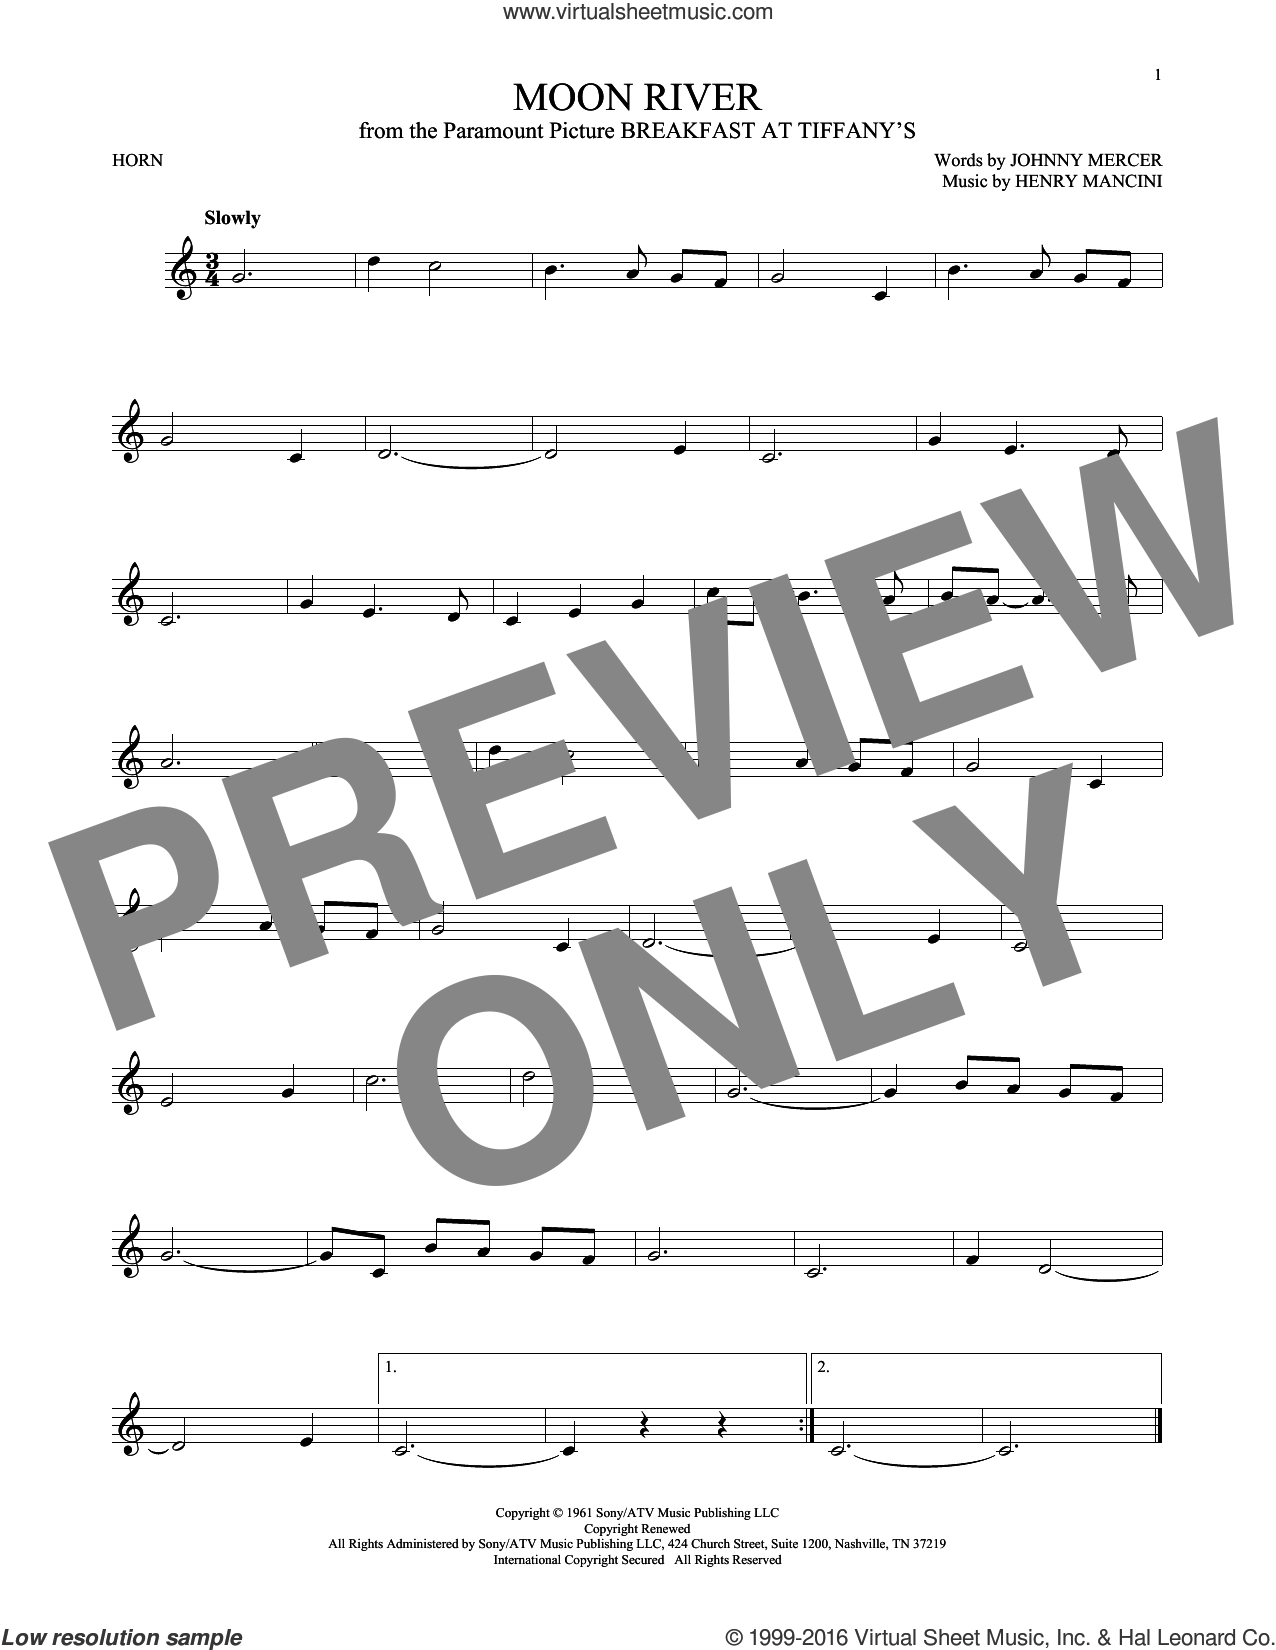 Moon River sheet music for horn solo by Johnny Mercer, Andy Williams and Henry Mancini, intermediate skill level